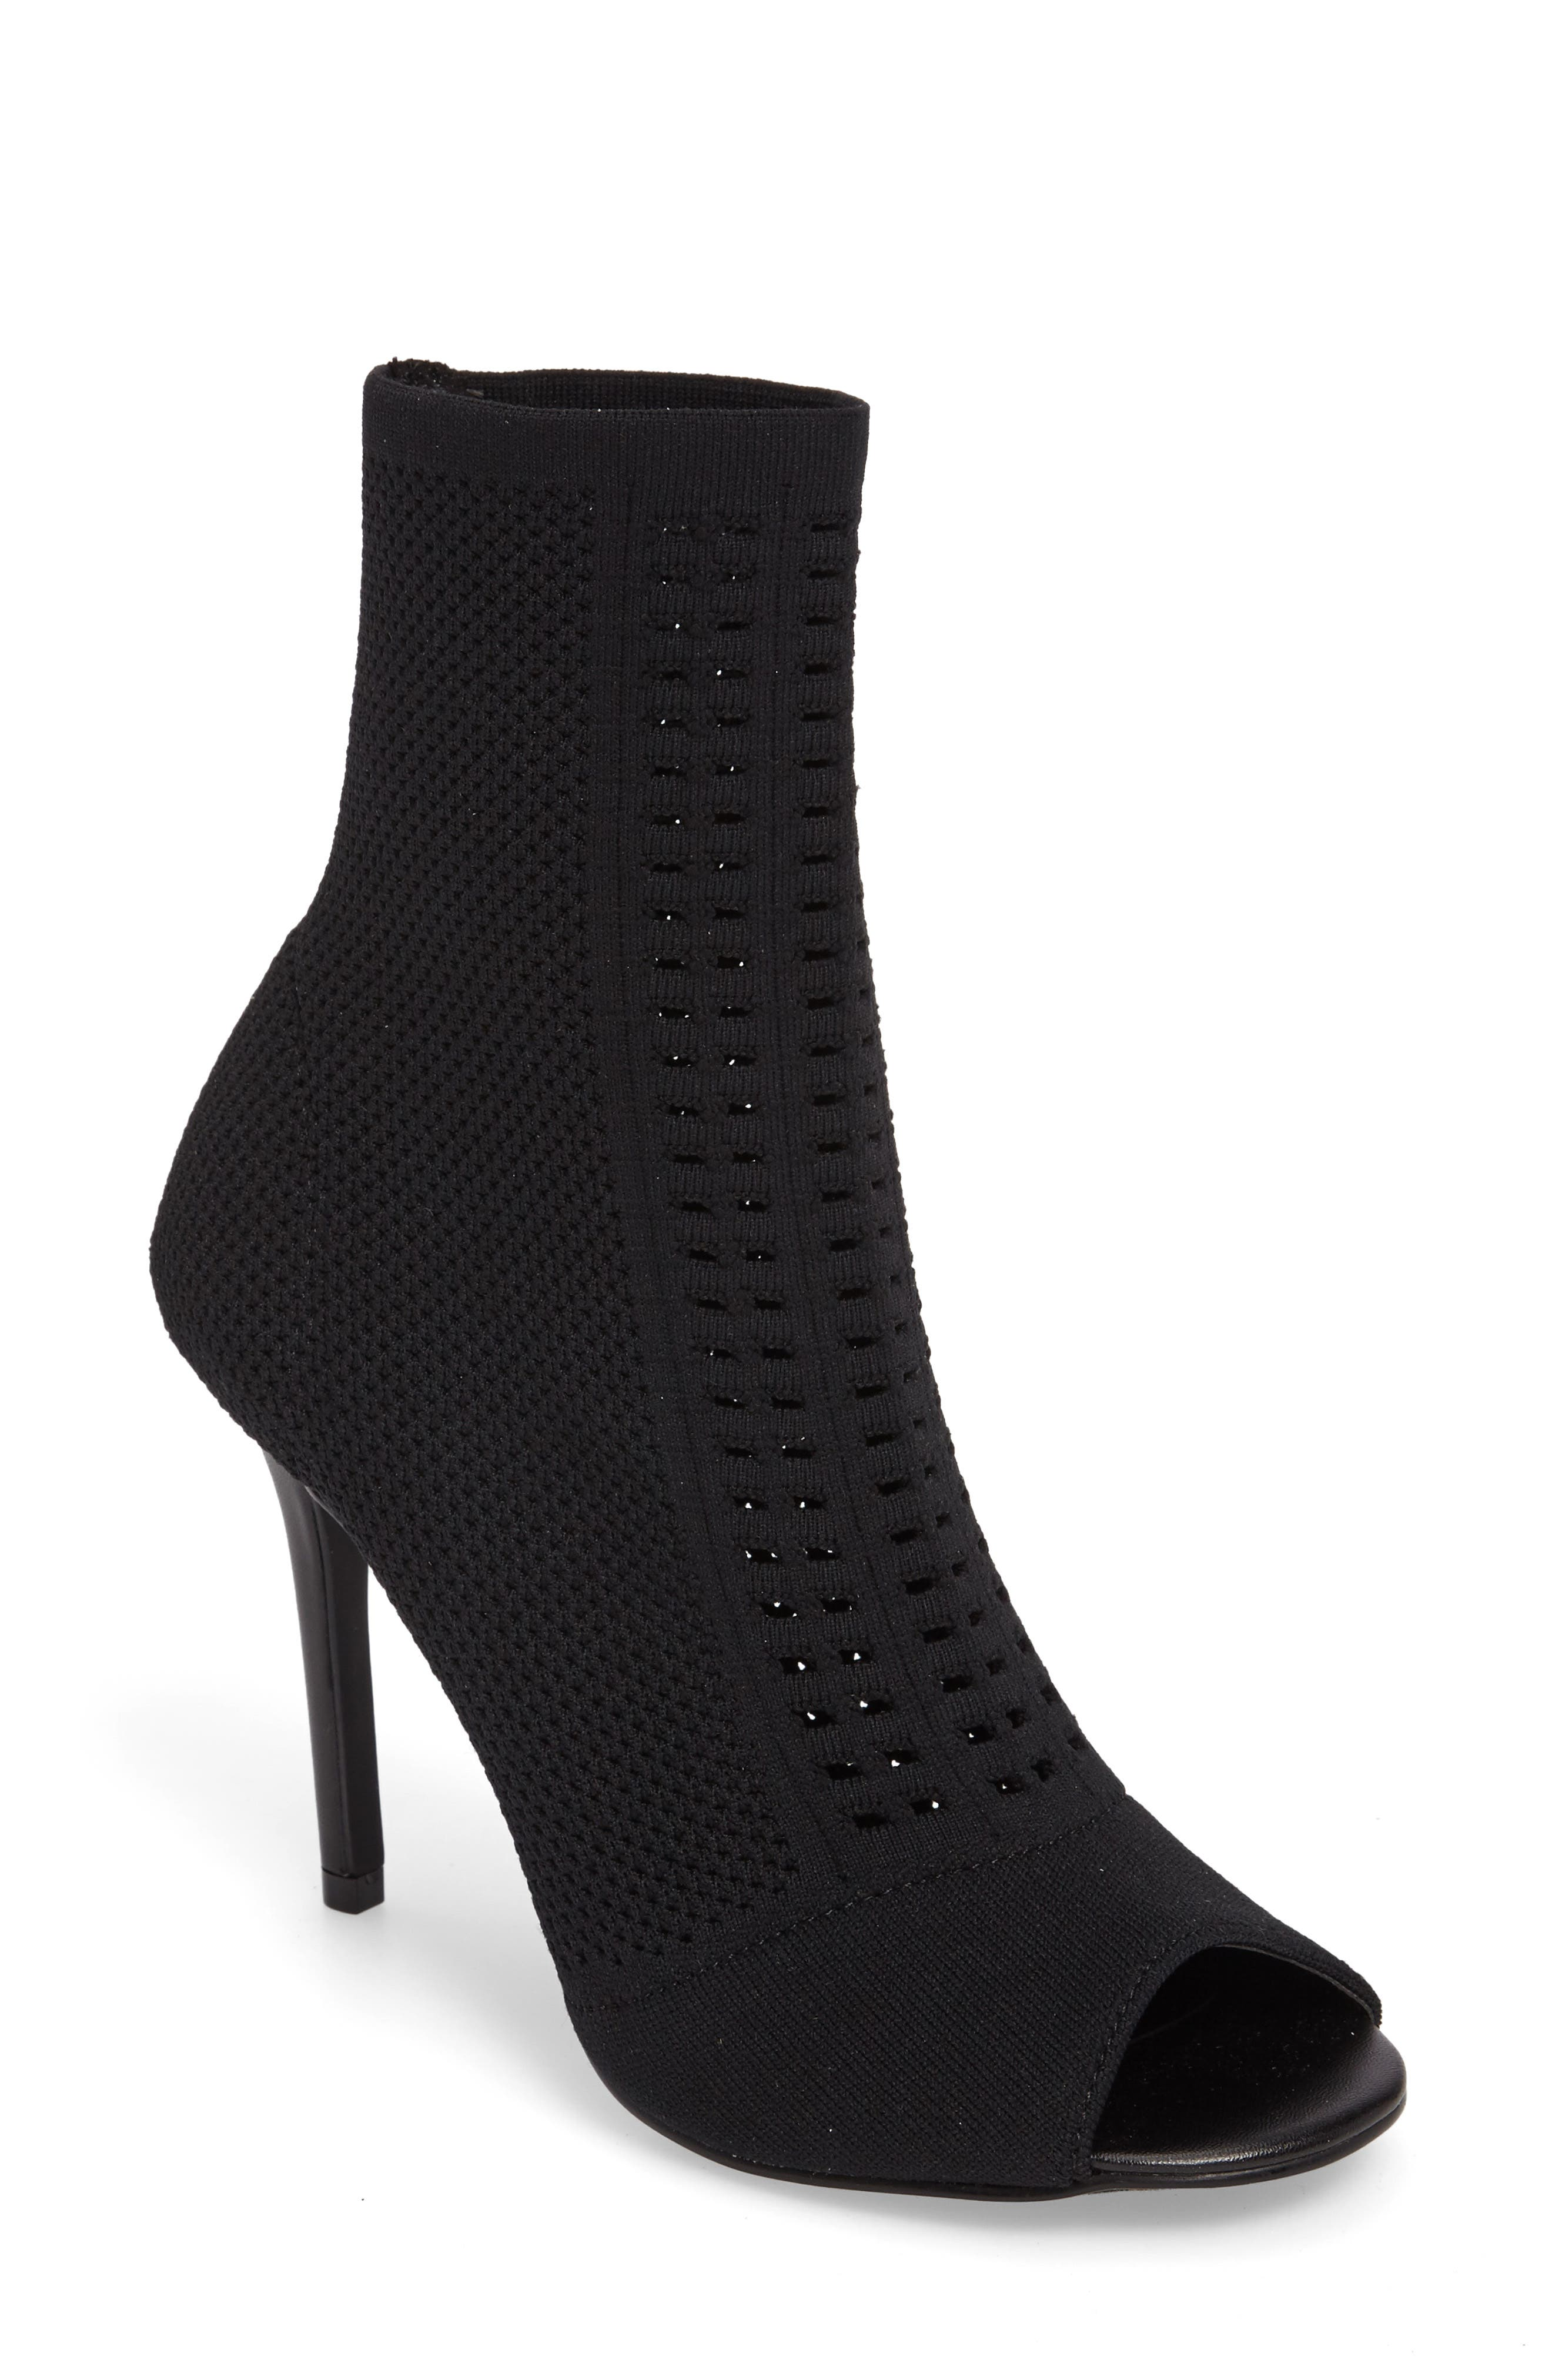 Rebellious Knit Peep Toe Bootie,                         Main,                         color, 001